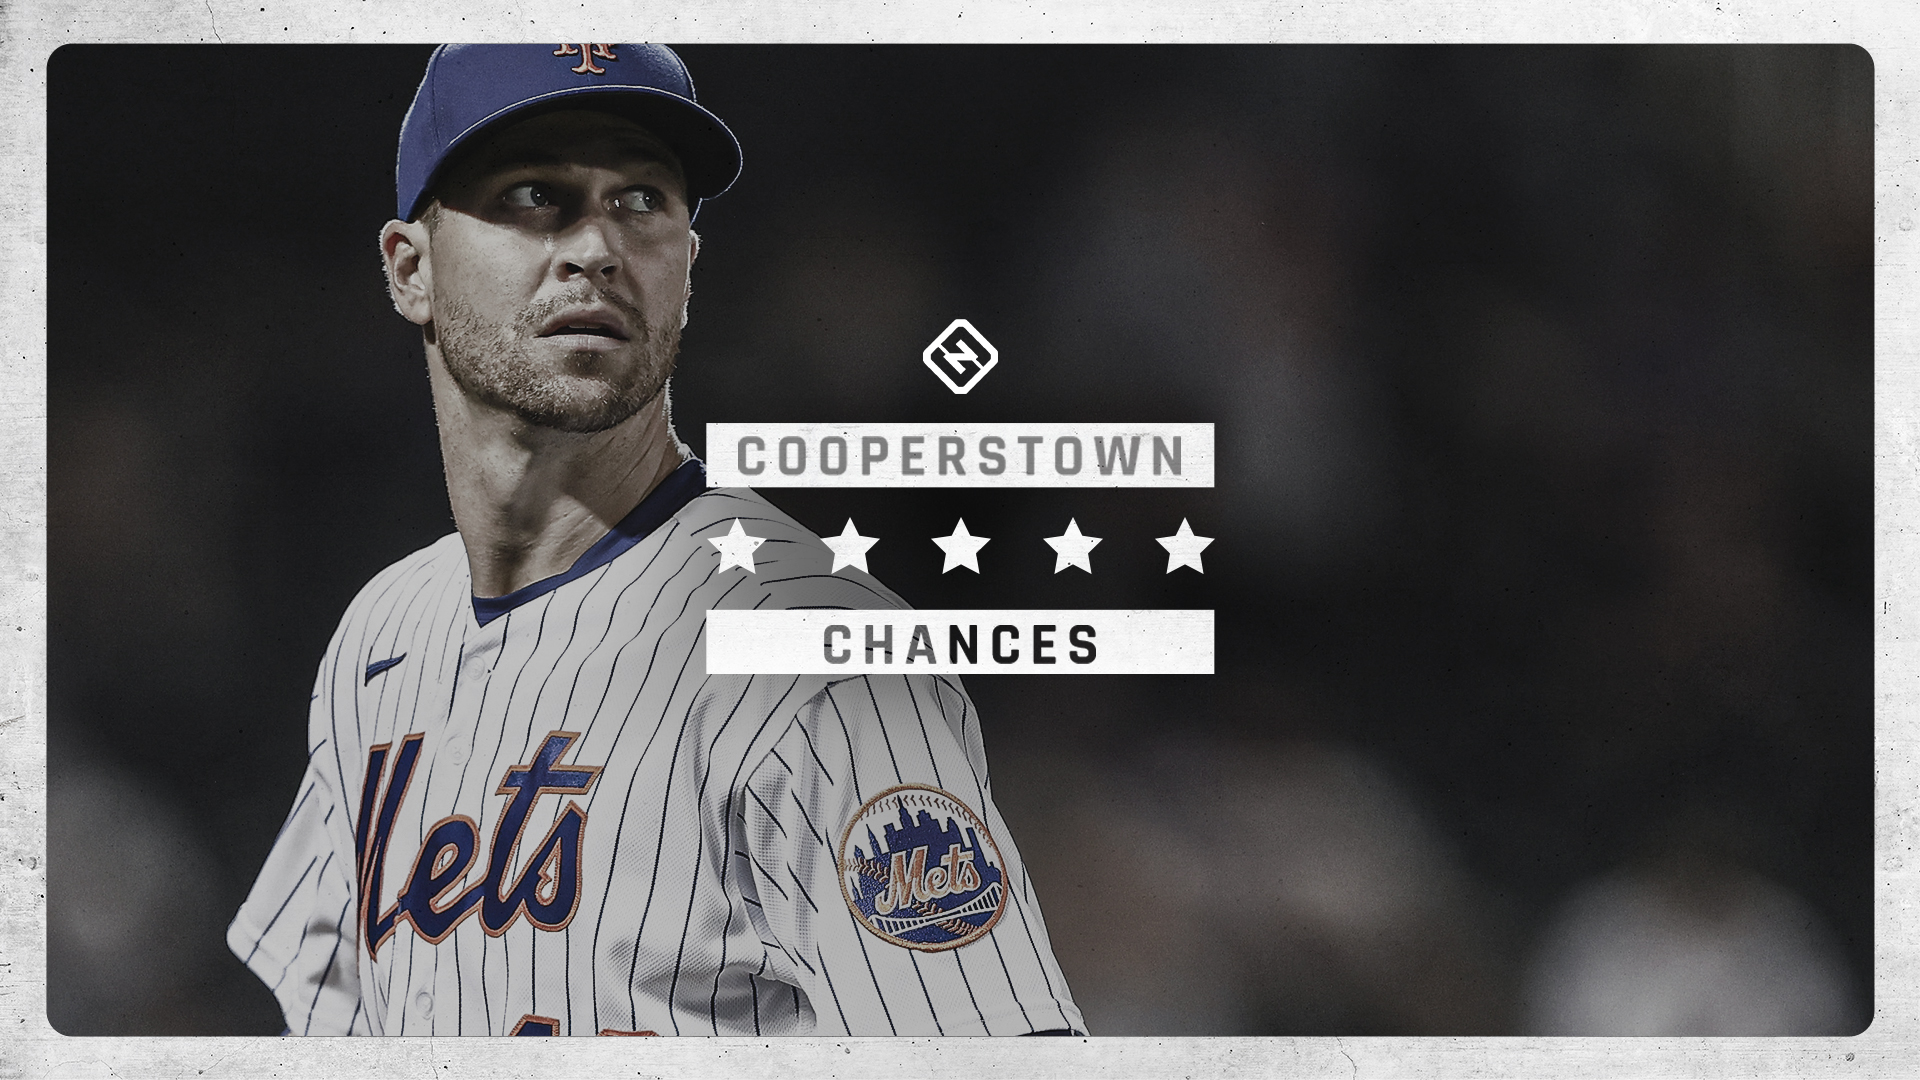 Cooperstown chances: Jacob deGrom makes up late start with all-time numbers